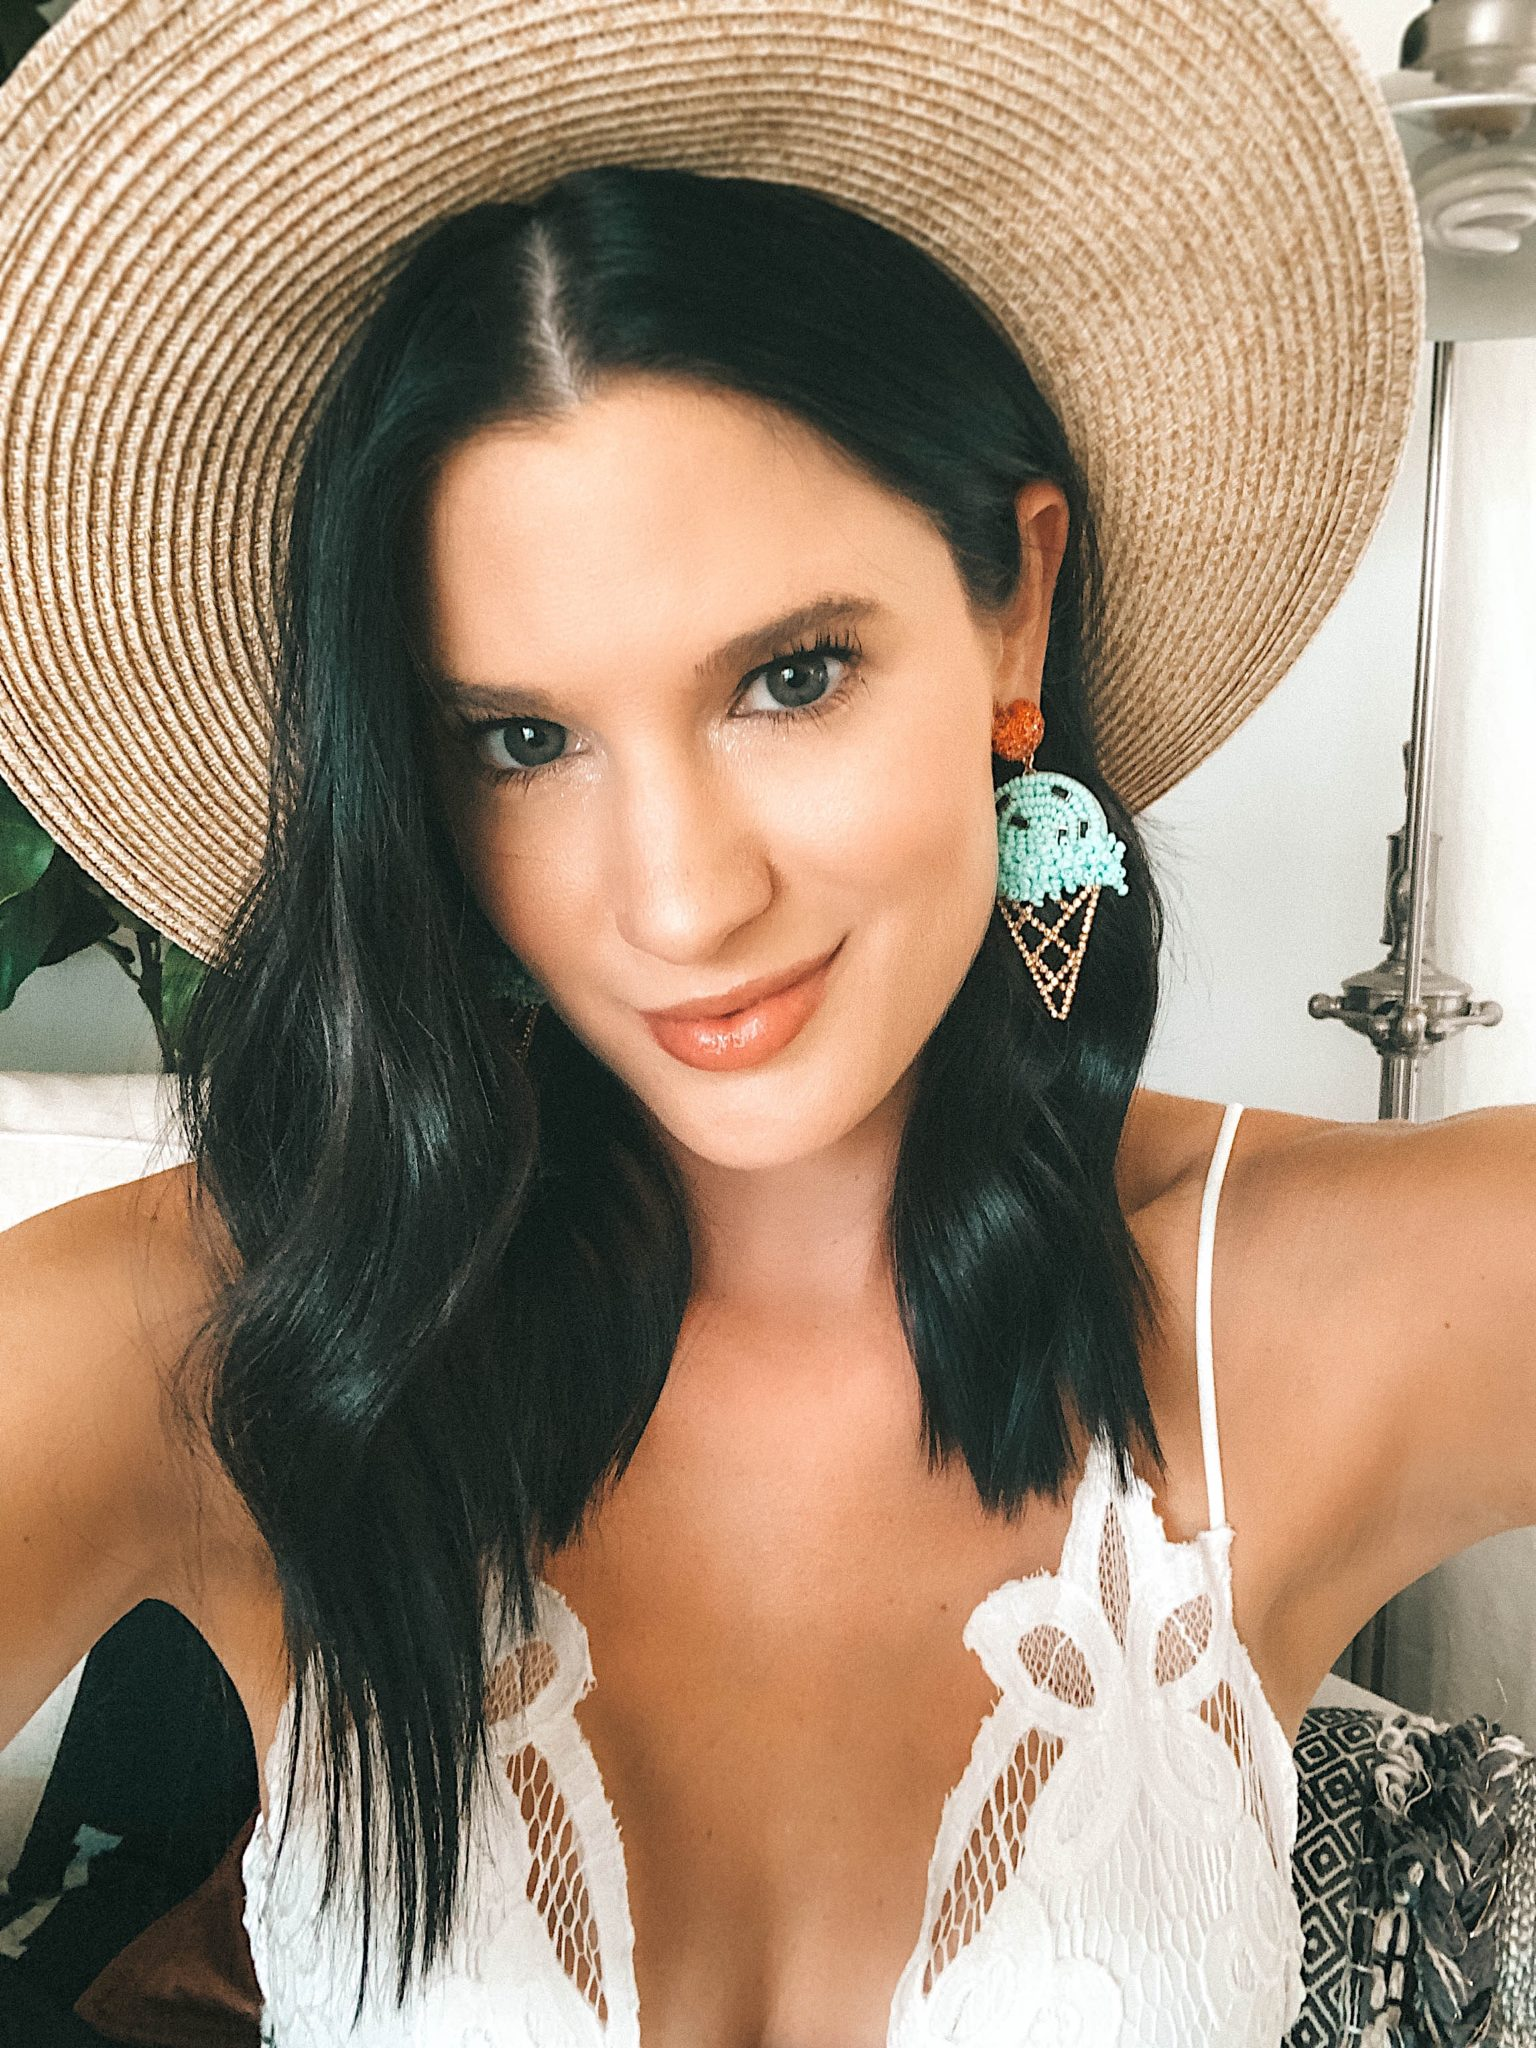 16 Affordable Statement Earrings for Summer by popular Austin fashion blog, Dressed to Kill: close up image of a women in a straw sunhat, white lace top with plunging neck and Baublebar ice cream statement earrings.